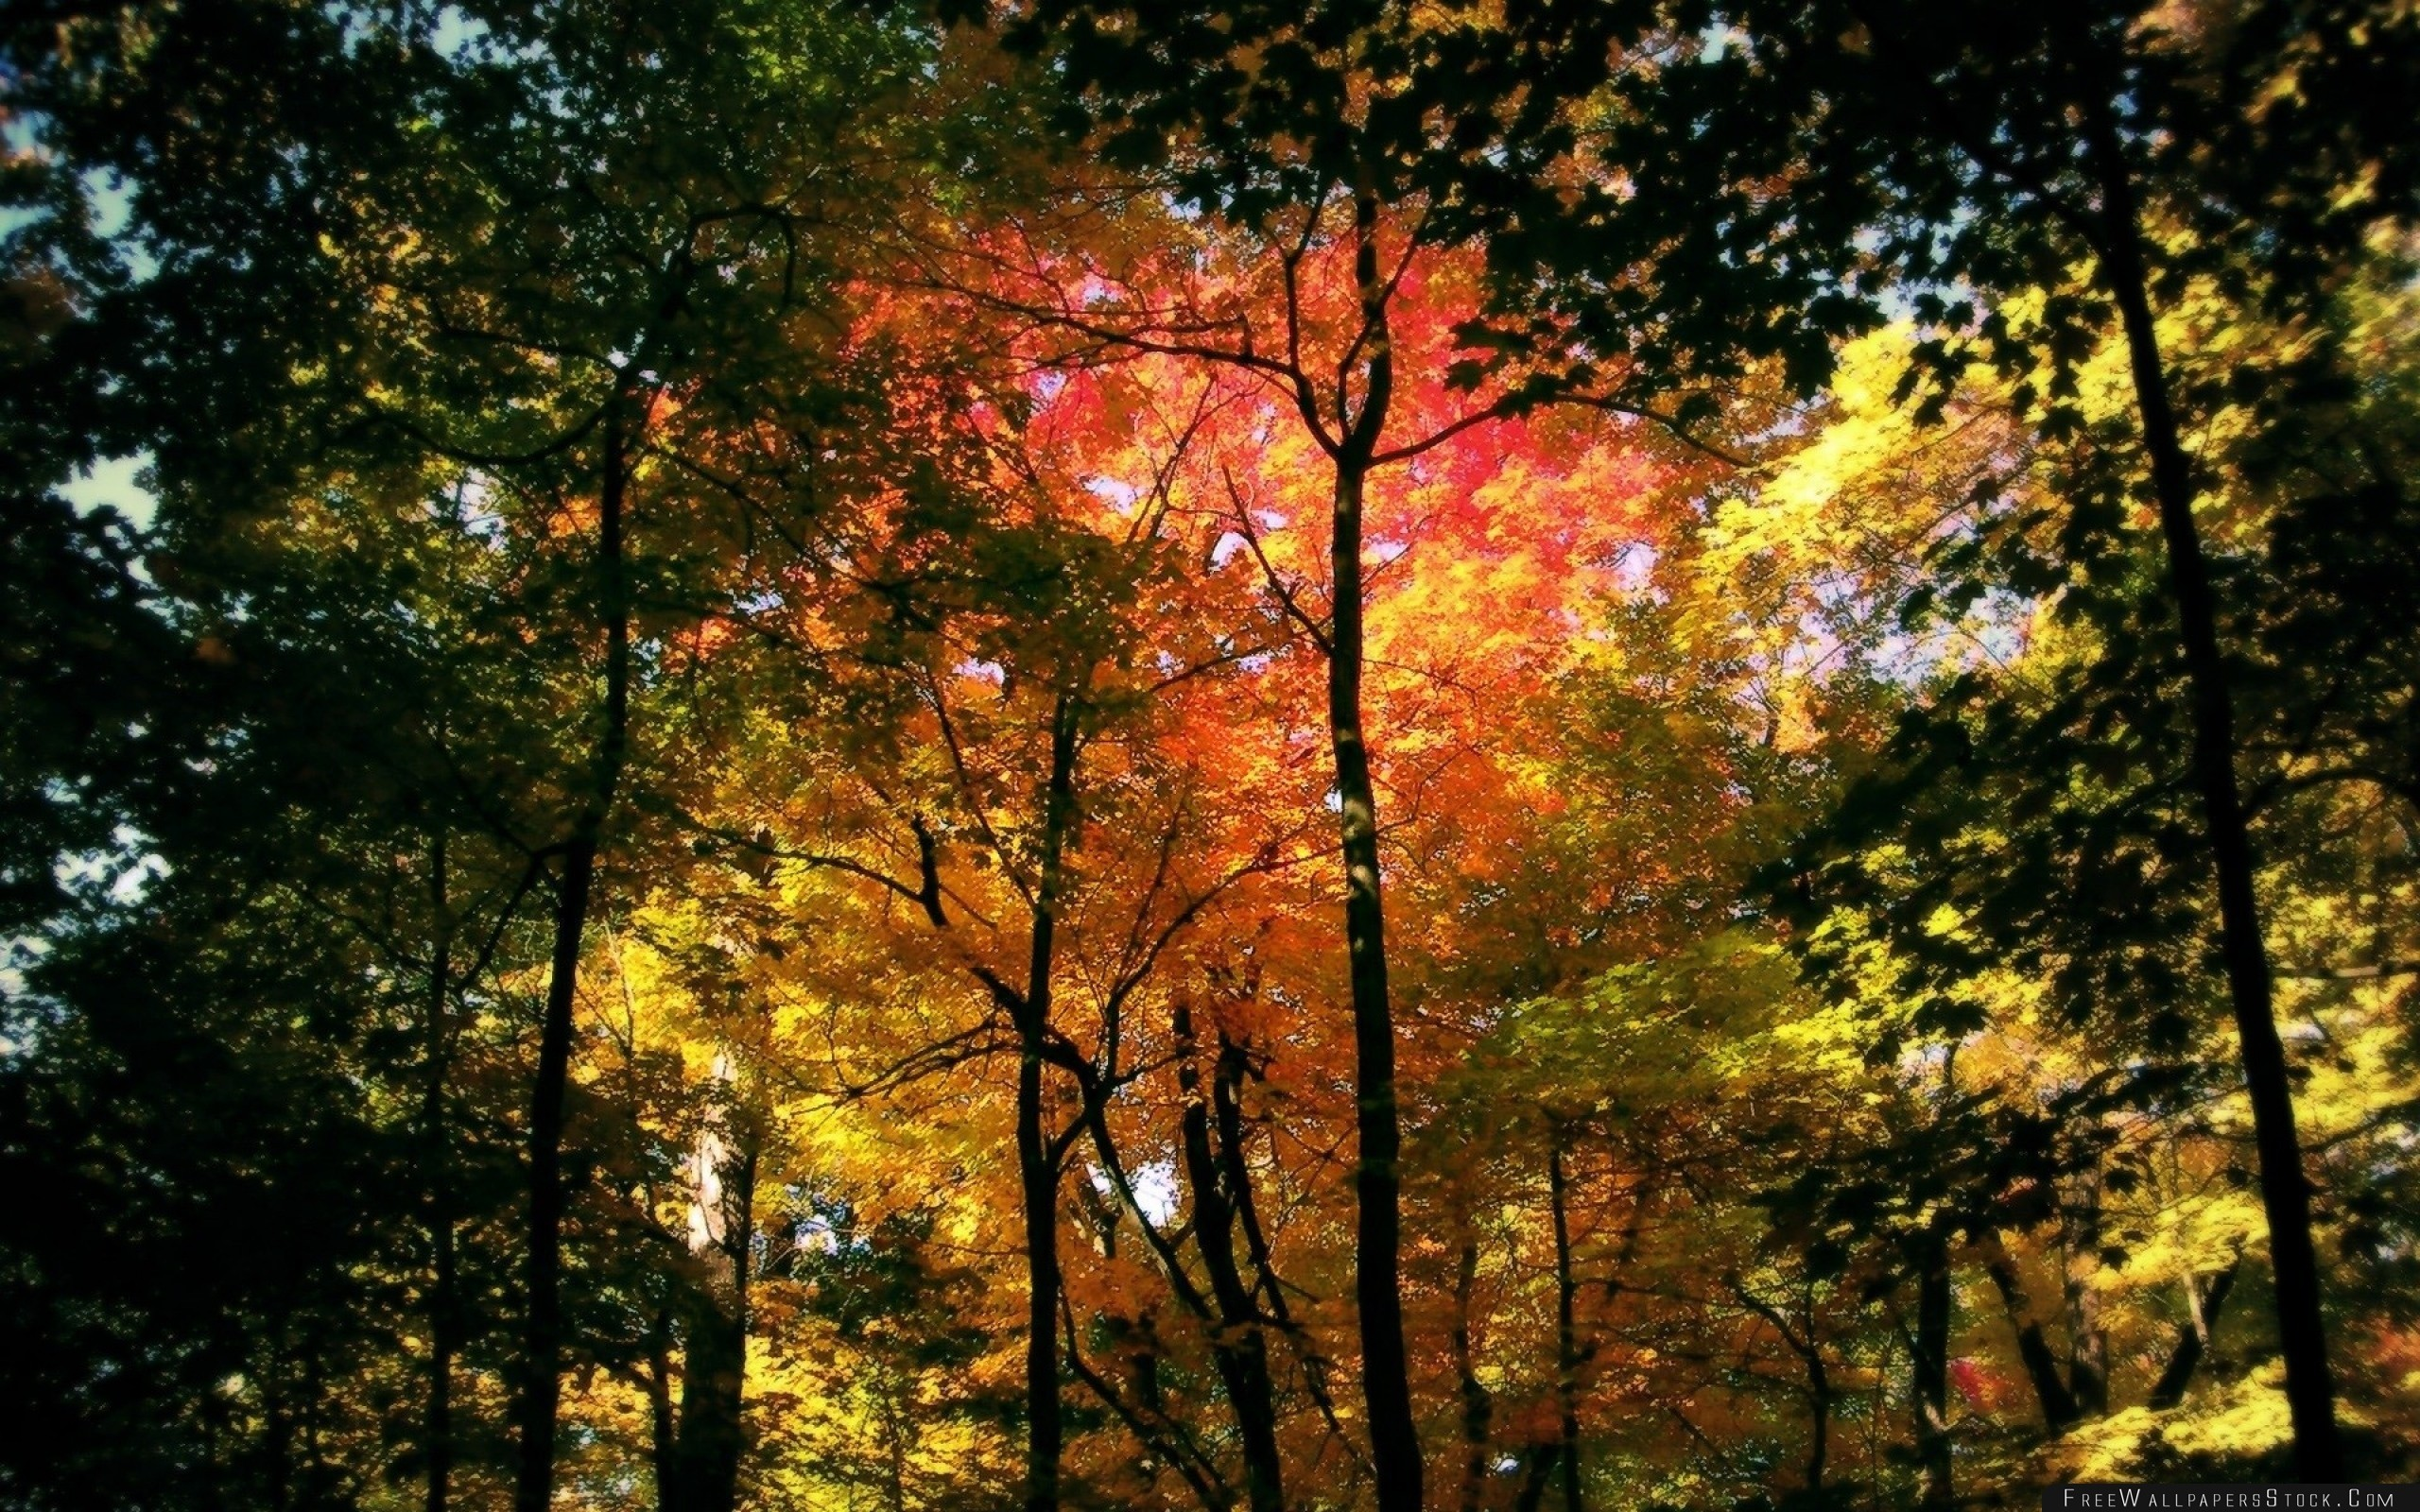 Download Free Wallpaper Wood Trees Autumn Crones Colors Yellow Red Green